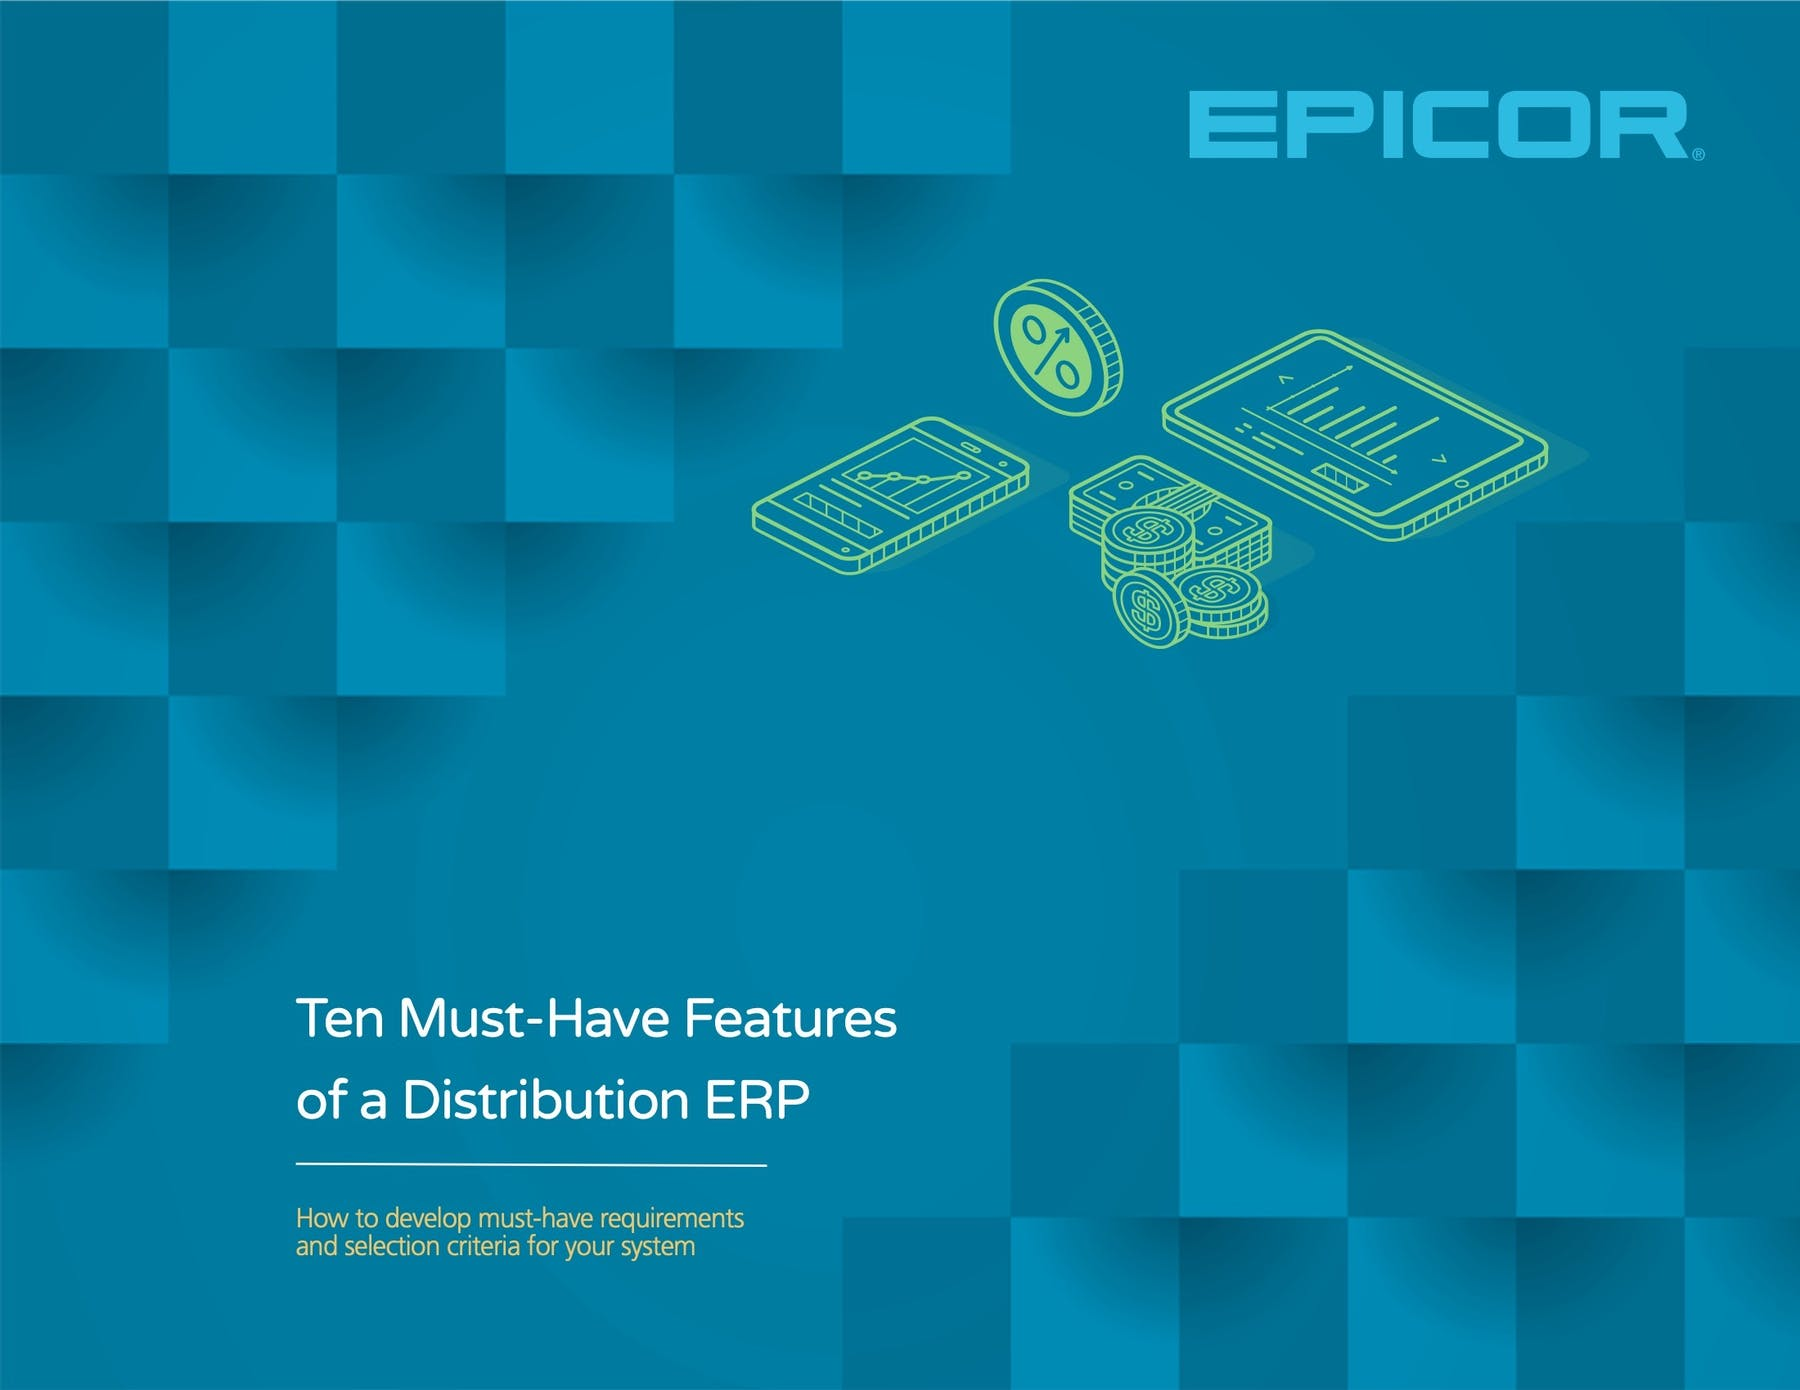 Epicor Prophet 21 White Paper - Ten Must-Have Features of a Distribution ERP